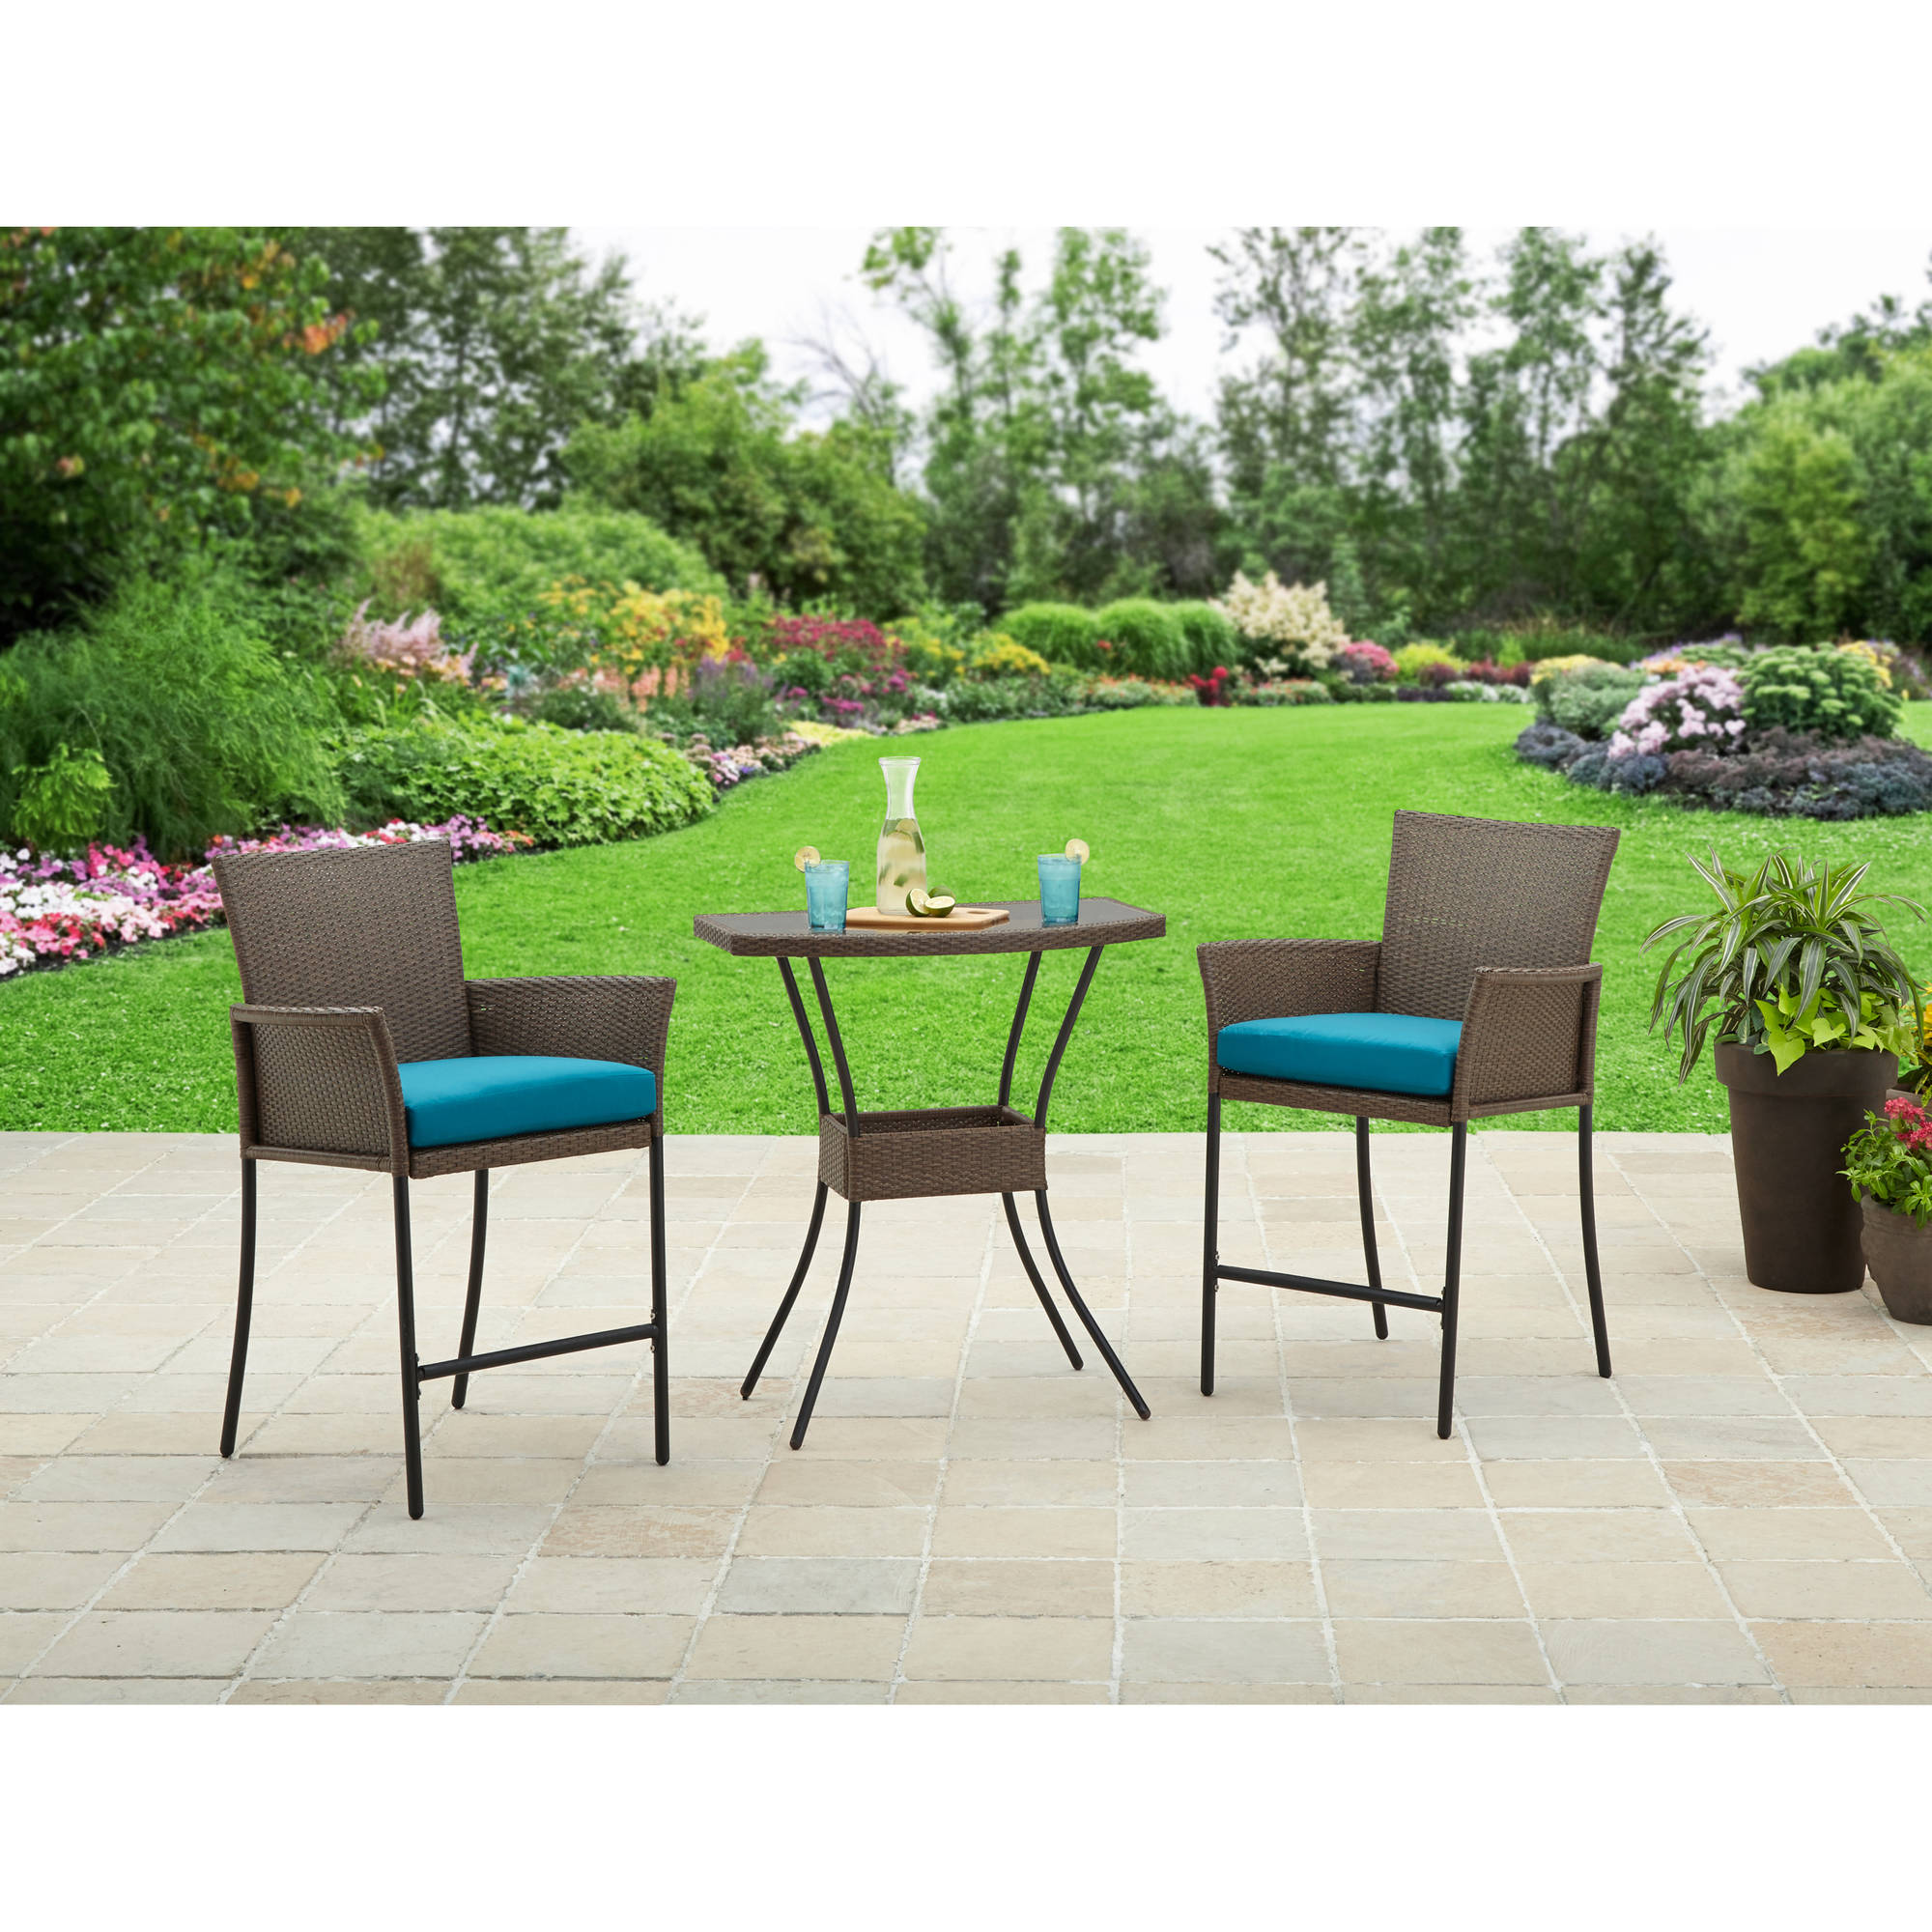 Better Homes and Gardens Fairfield Bay 3-Piece Balcony Bistro Set